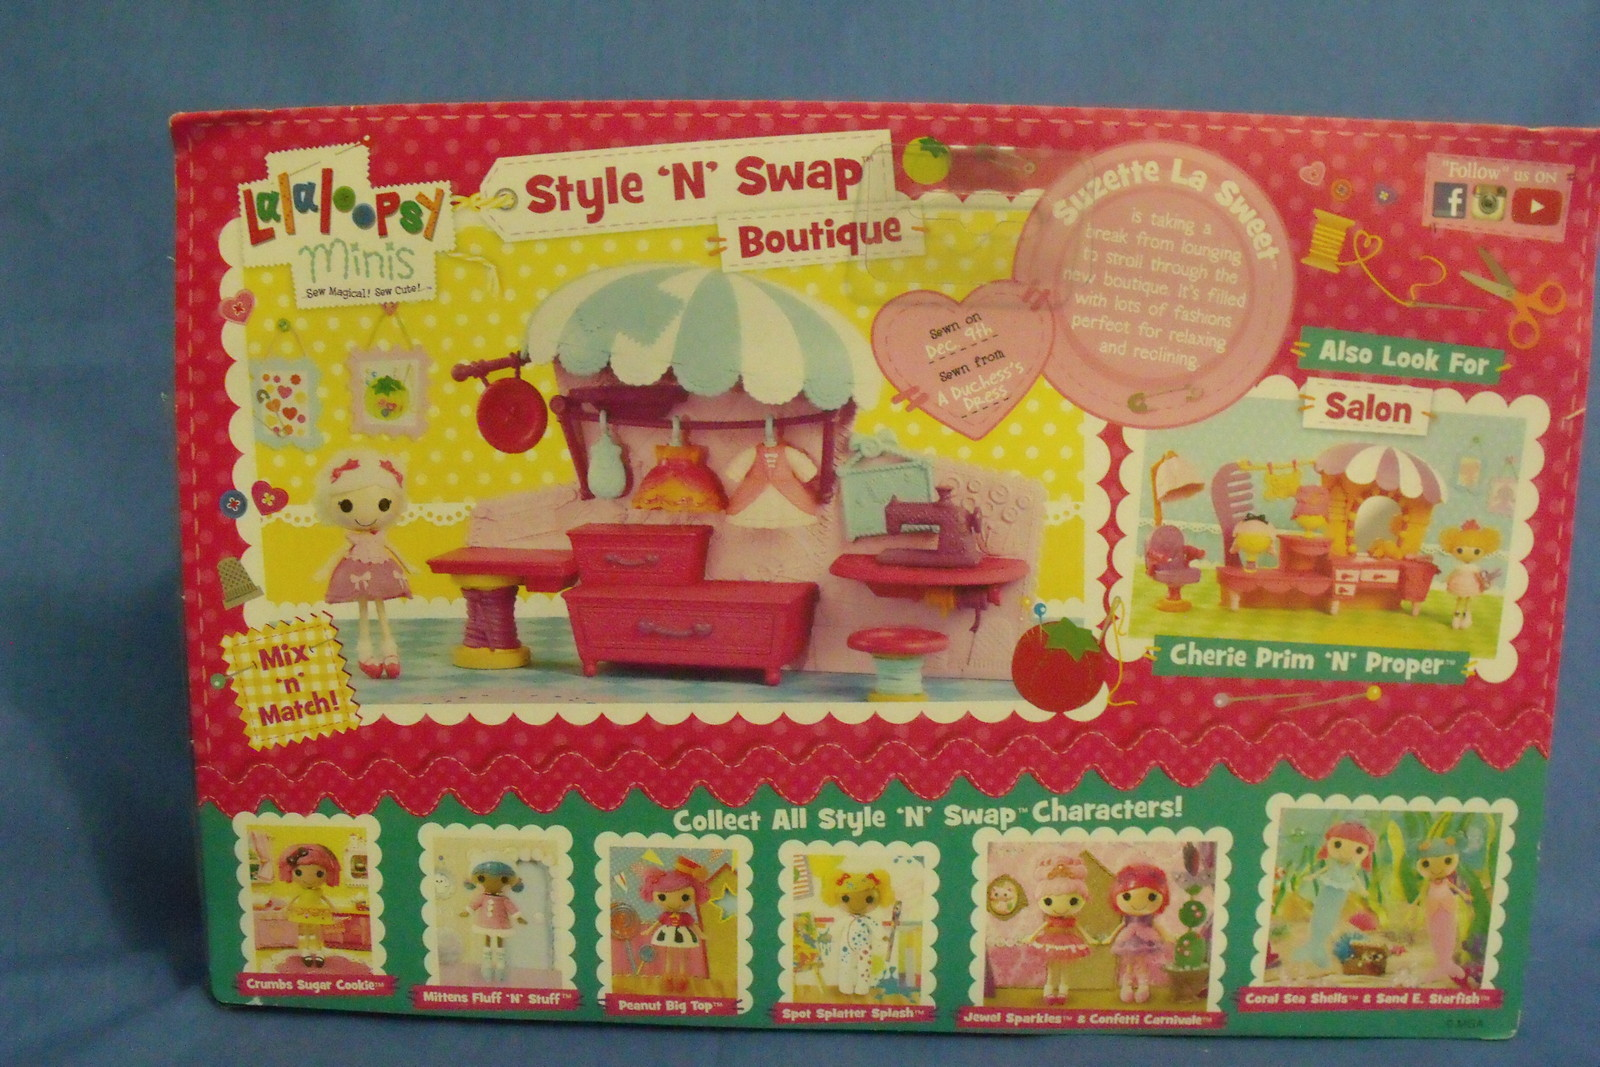 Toys Dolls New Lalaloopsy Style N Swap Boutique Suzette La Sweet 11 pc